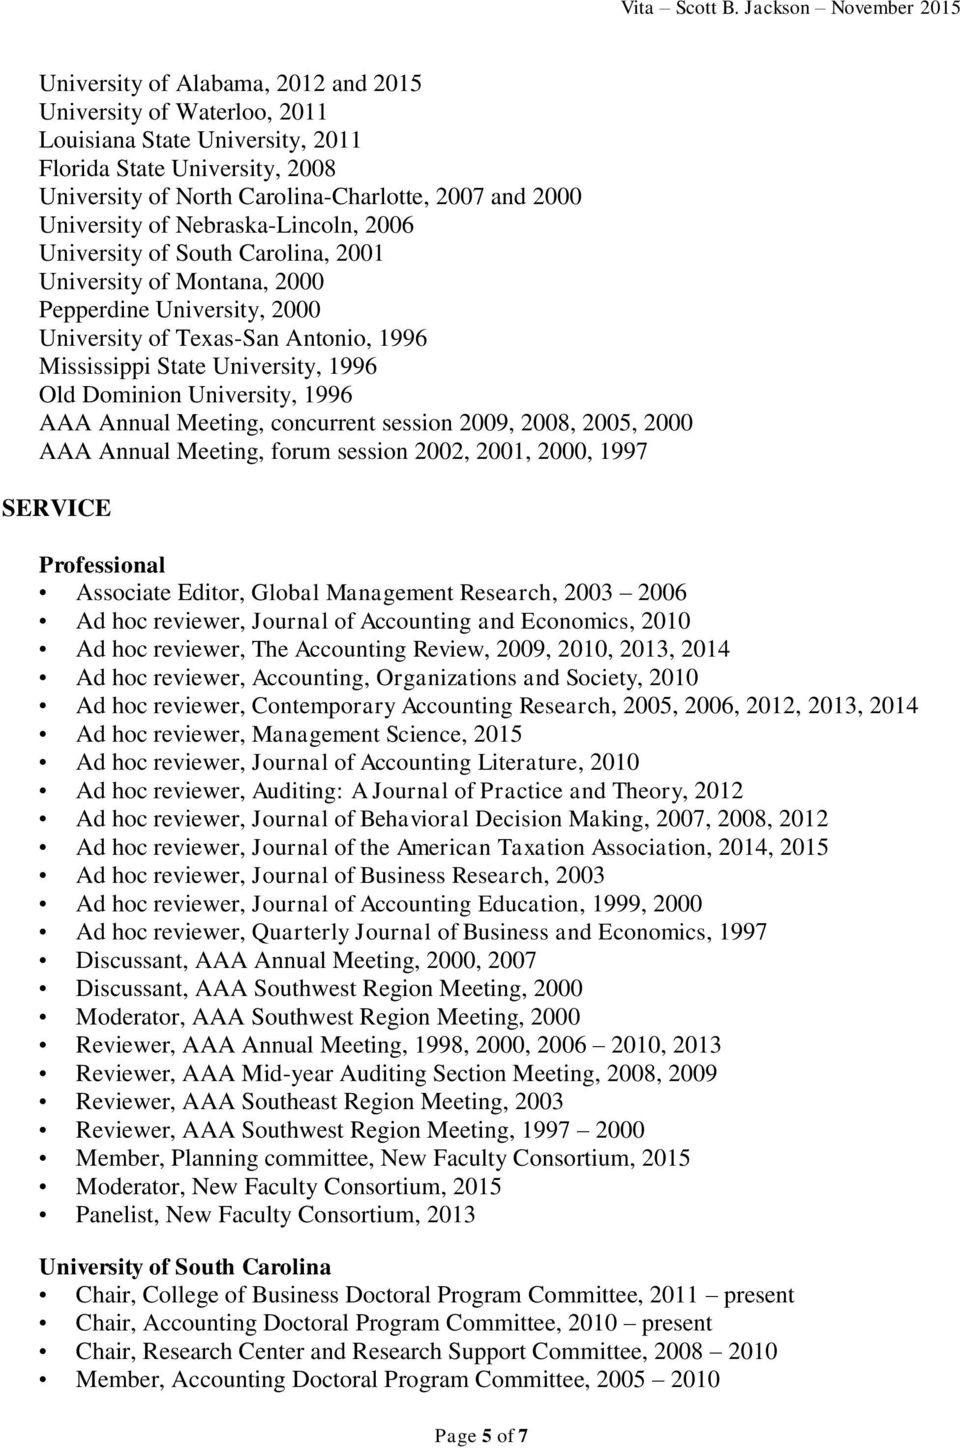 University, 1996 AAA Annual Meeting, concurrent session 2009, 2008, 2005, 2000 AAA Annual Meeting, forum session 2002, 2001, 2000, 1997 SERVICE Professional Associate Editor, Global Management